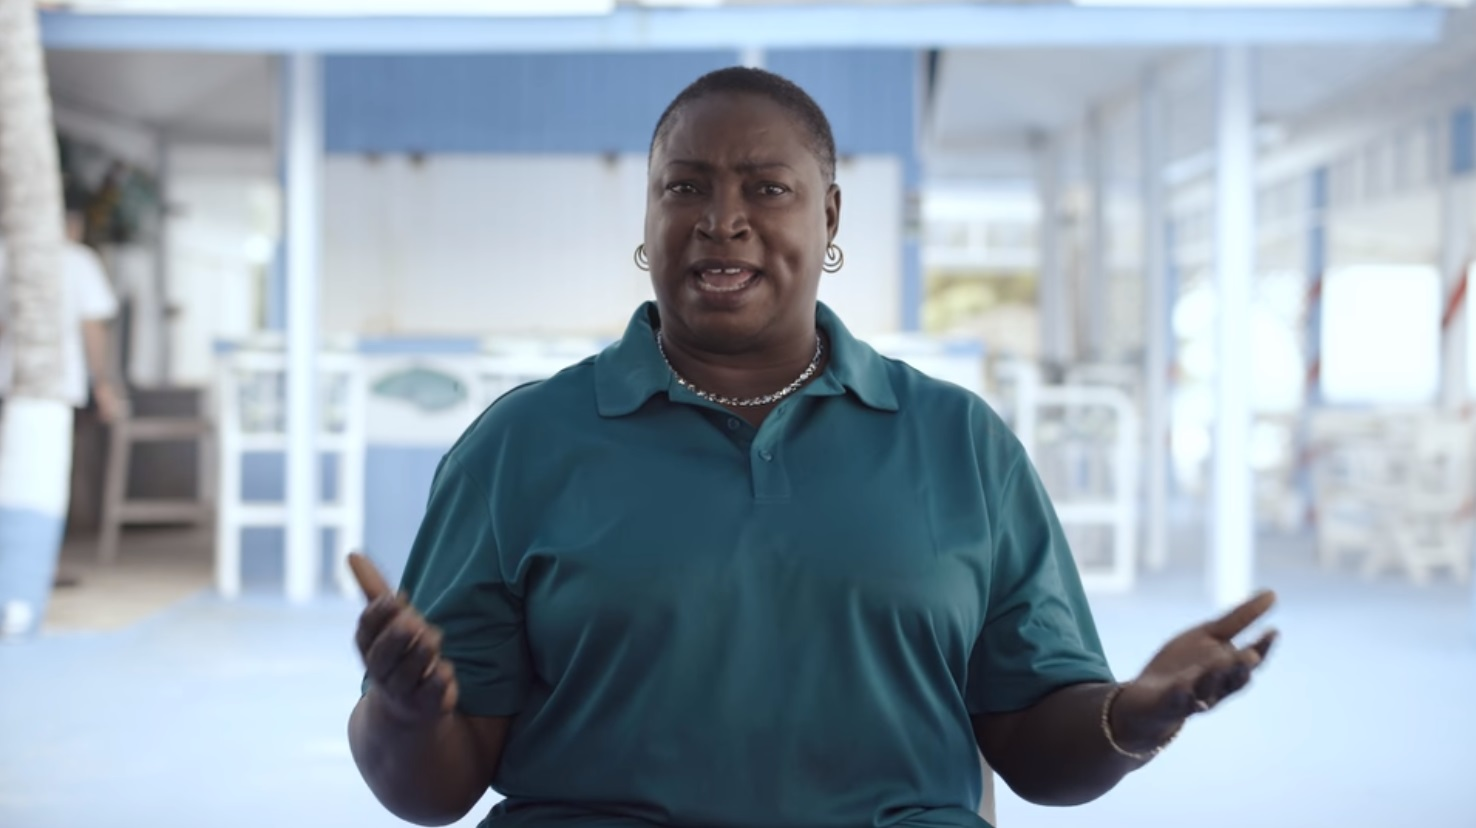 Viewers were struck by the story of local caterer Maryann Rolle. Credit: Netflix